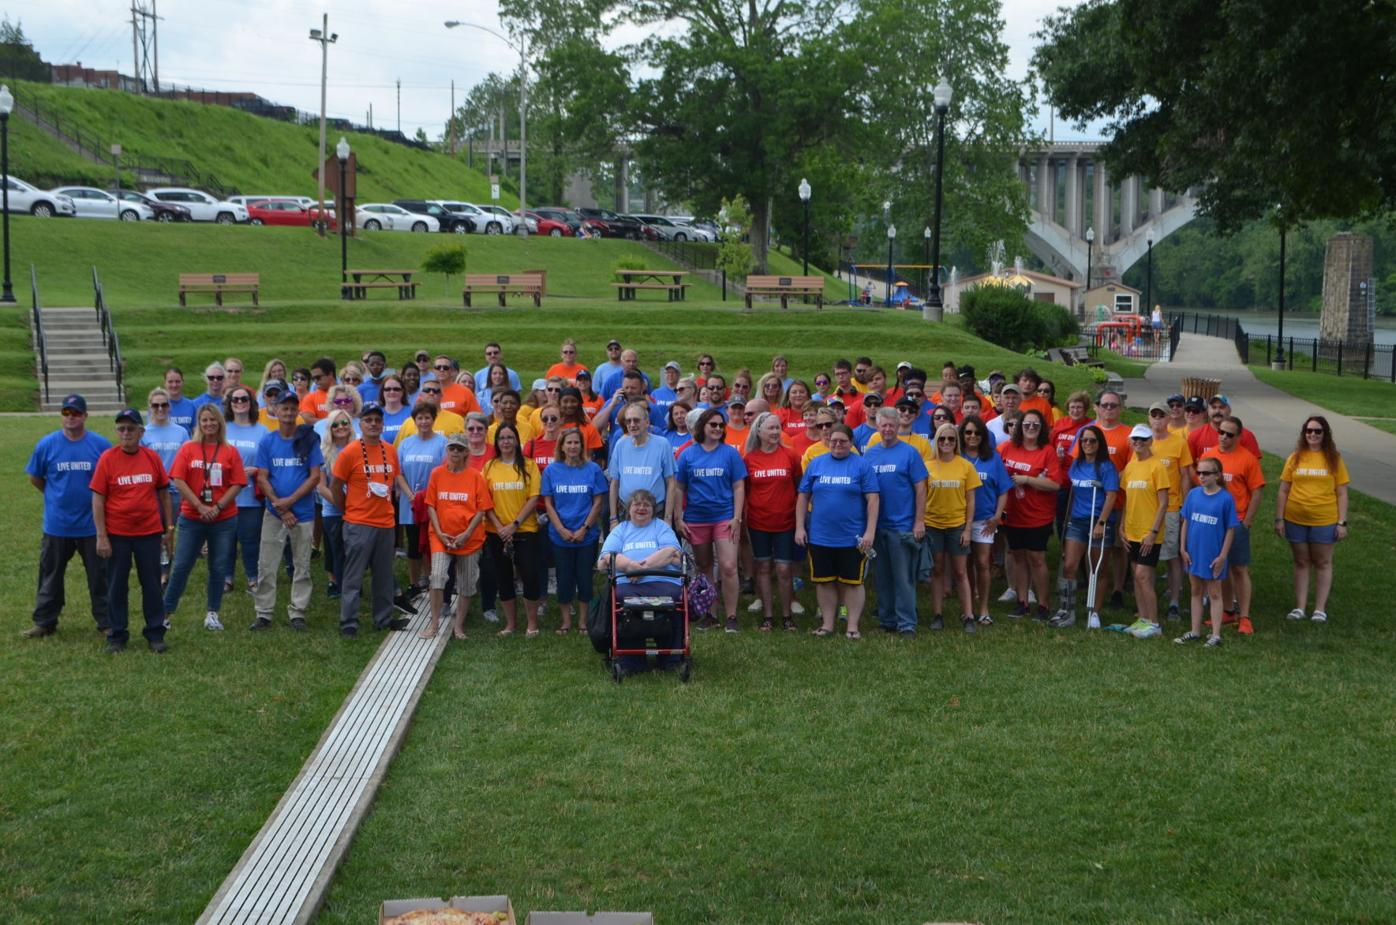 United Way Day of Action 2021